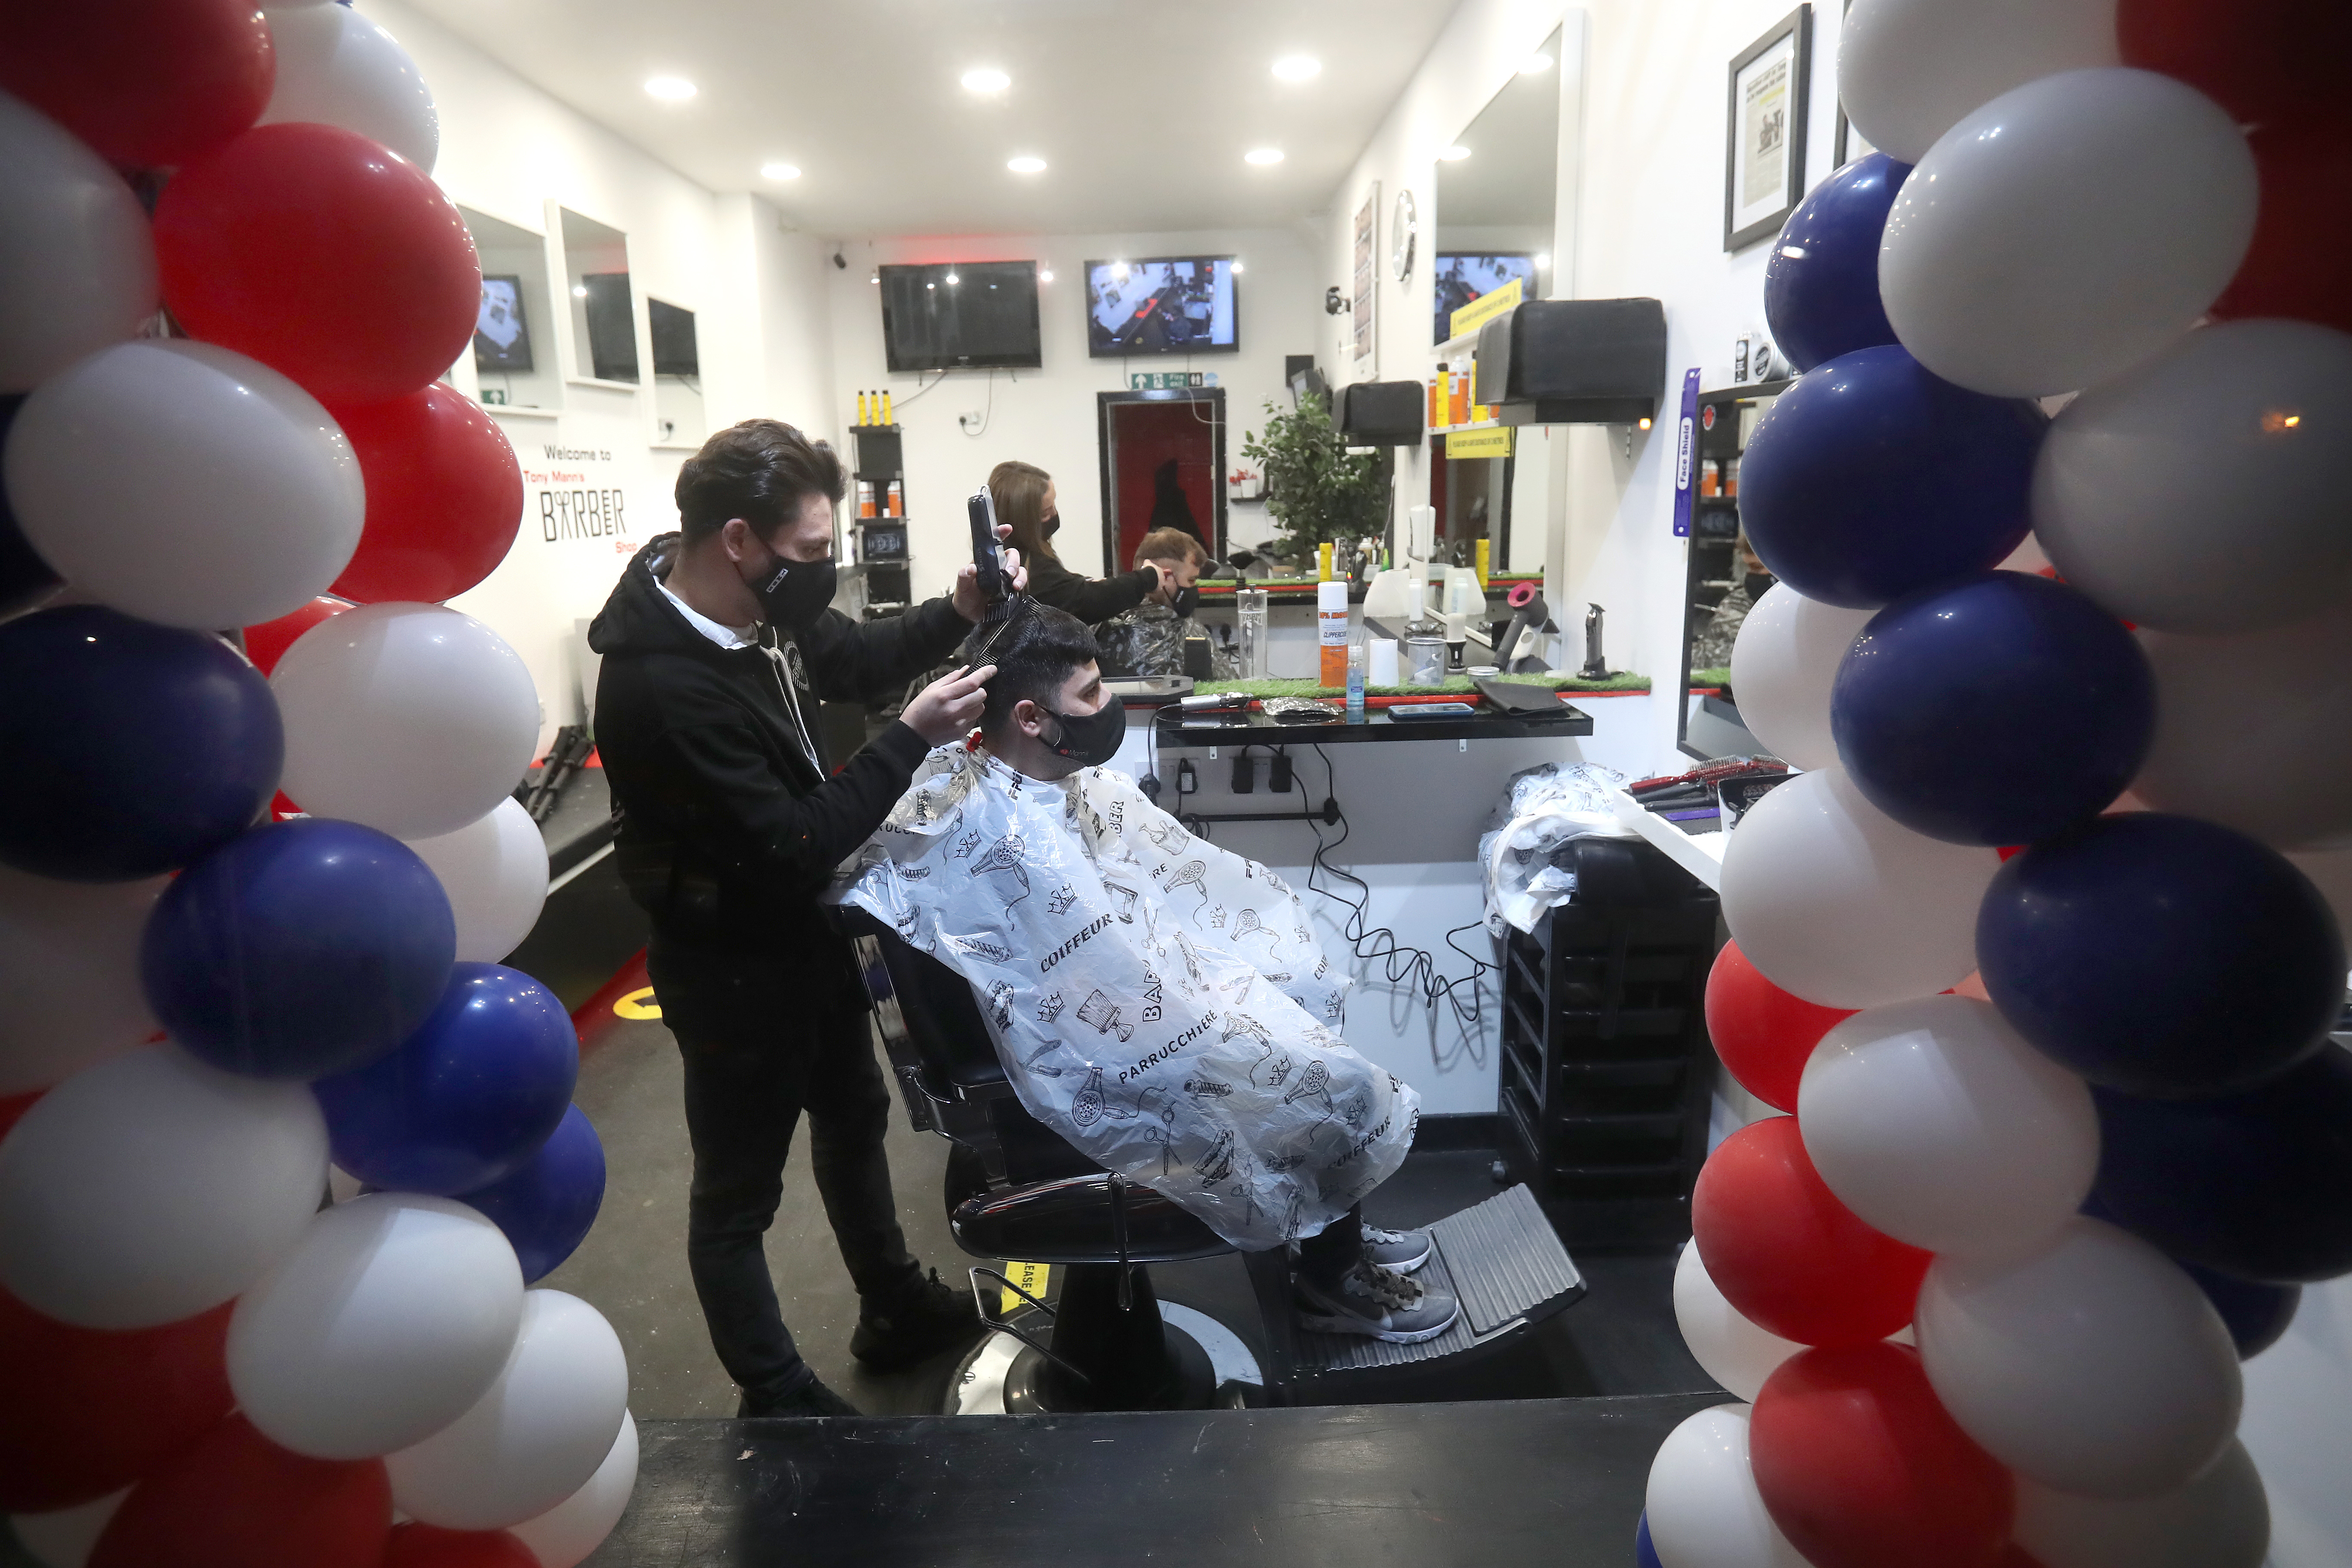 <p>Barber Tony Mann trims Max Mann's hair at Tony Mann's Barber Shop in Giffnock near Glasgow as barbers reopen across Scotland. Picture date: Monday April 5, 2021.</p>